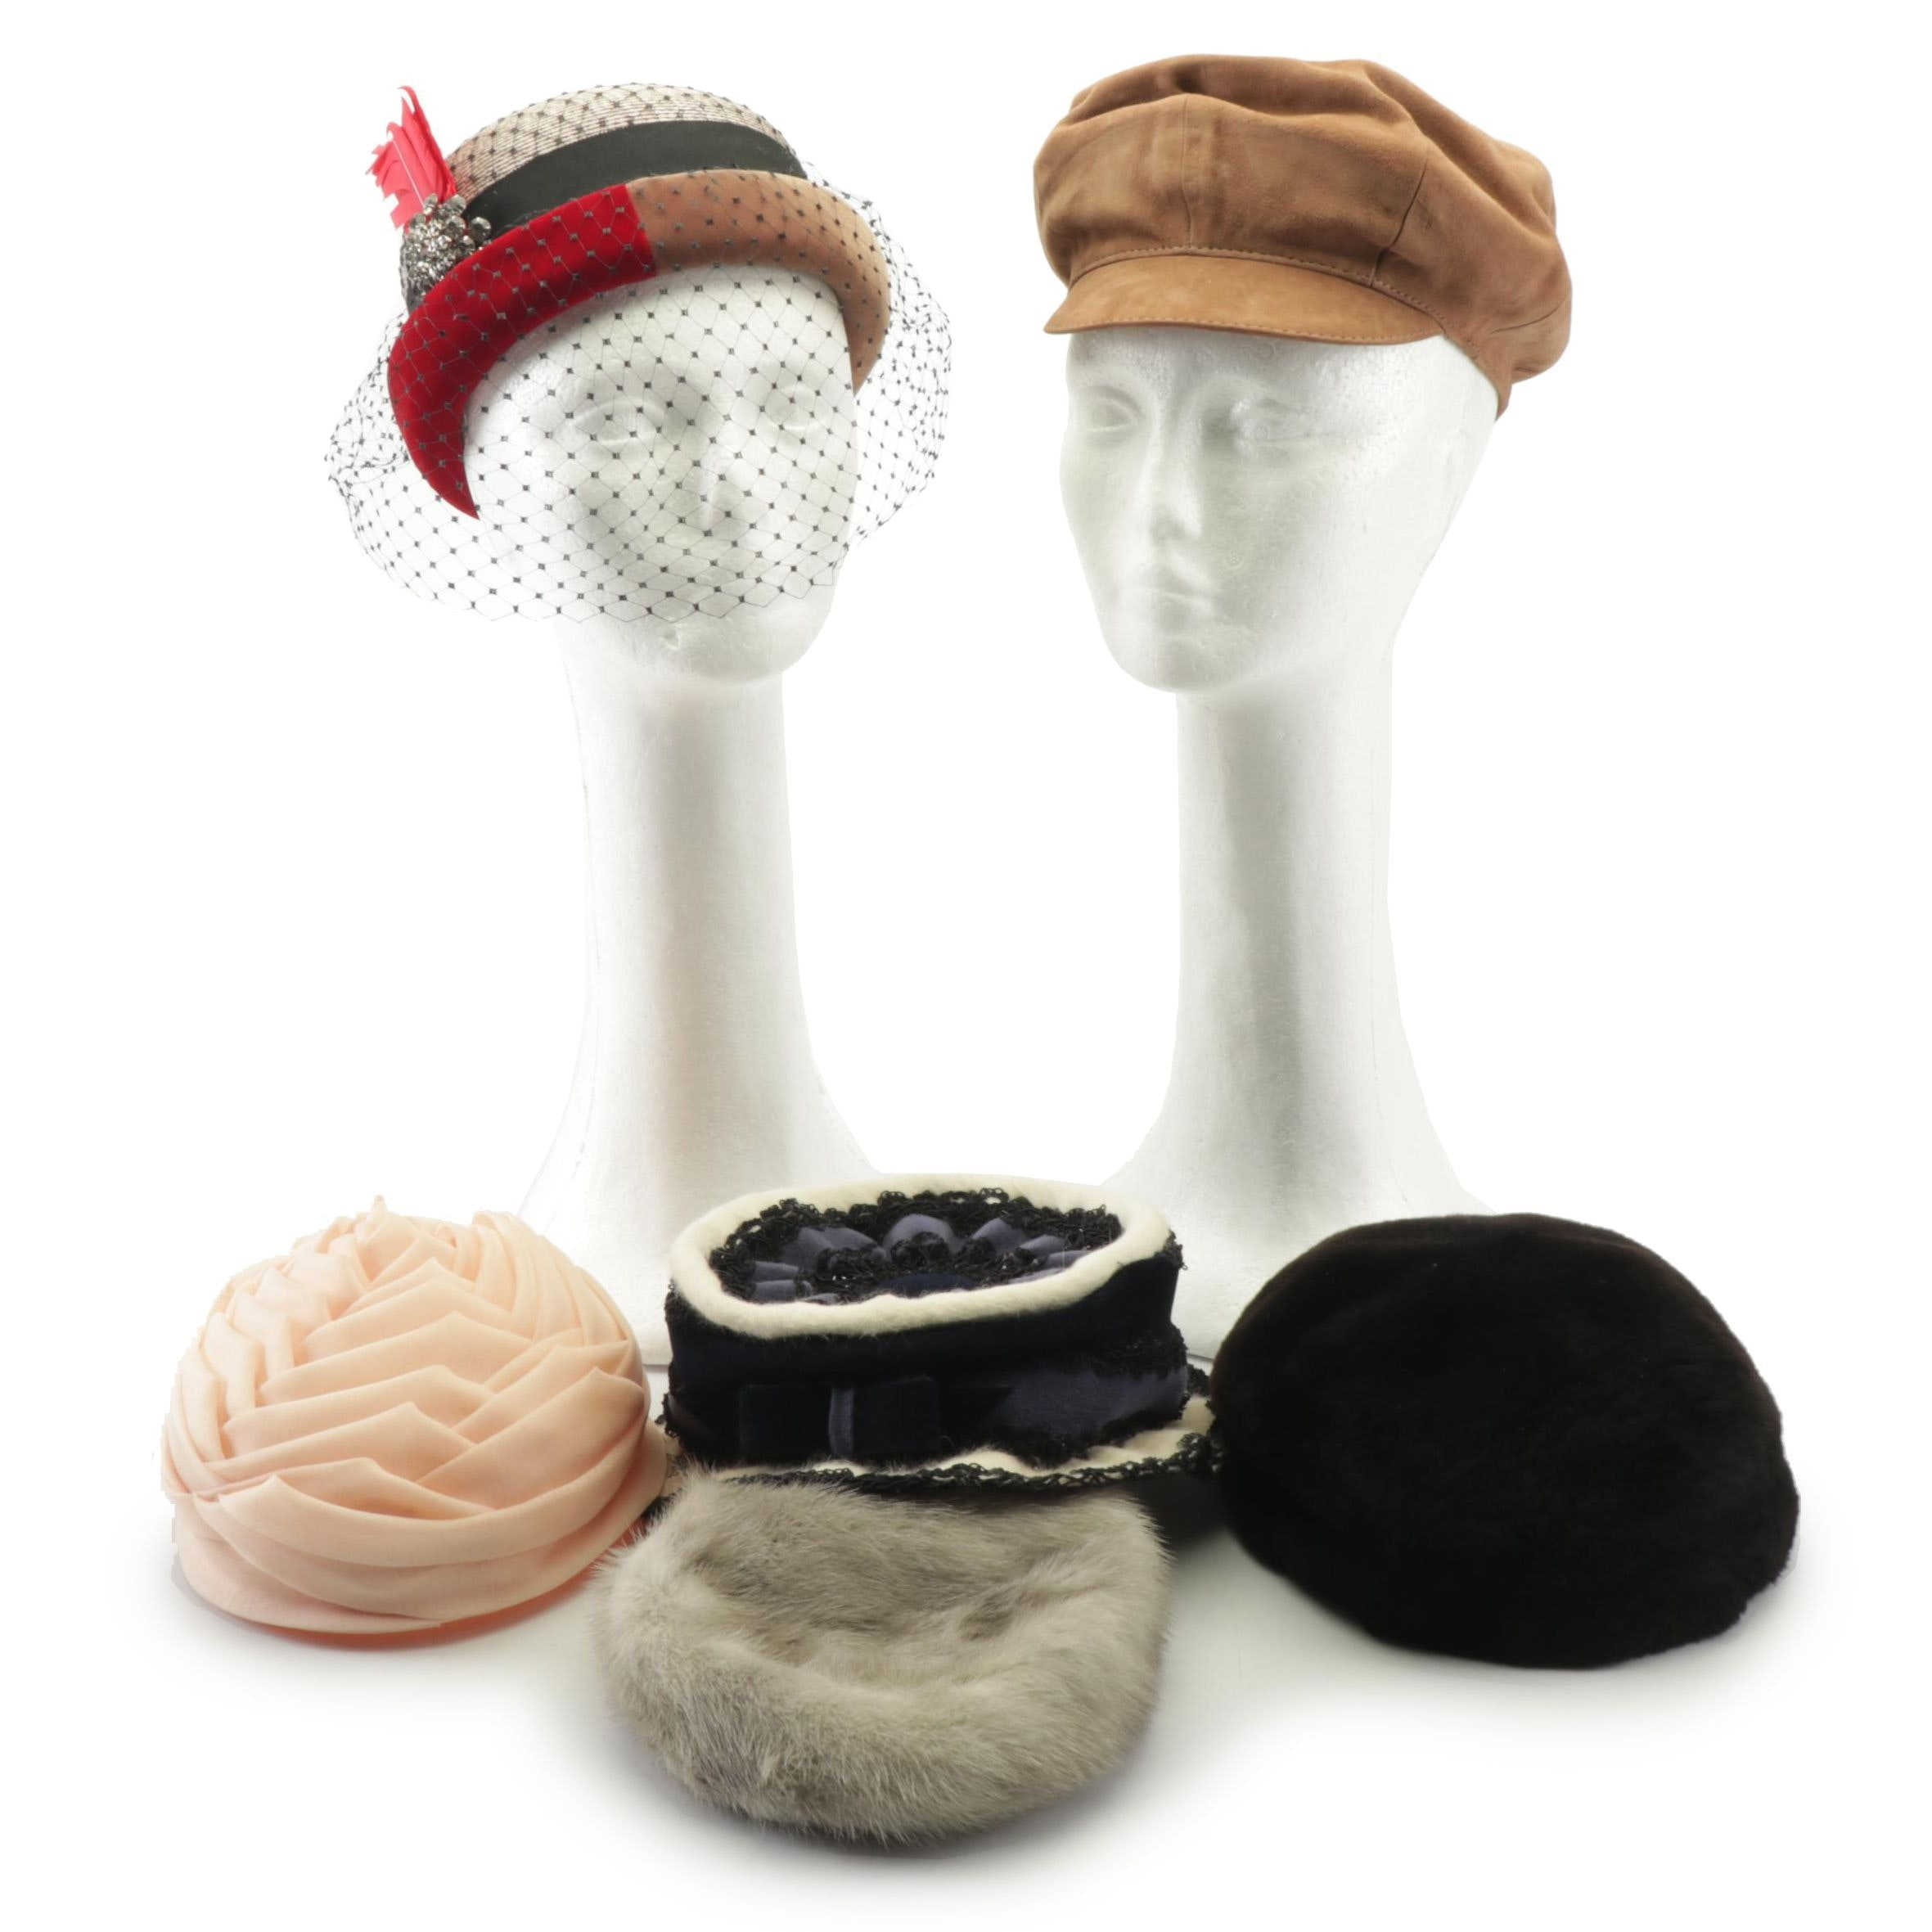 Women's Fashion Hats Including Dolly Madison and Mink Fur, Vintage